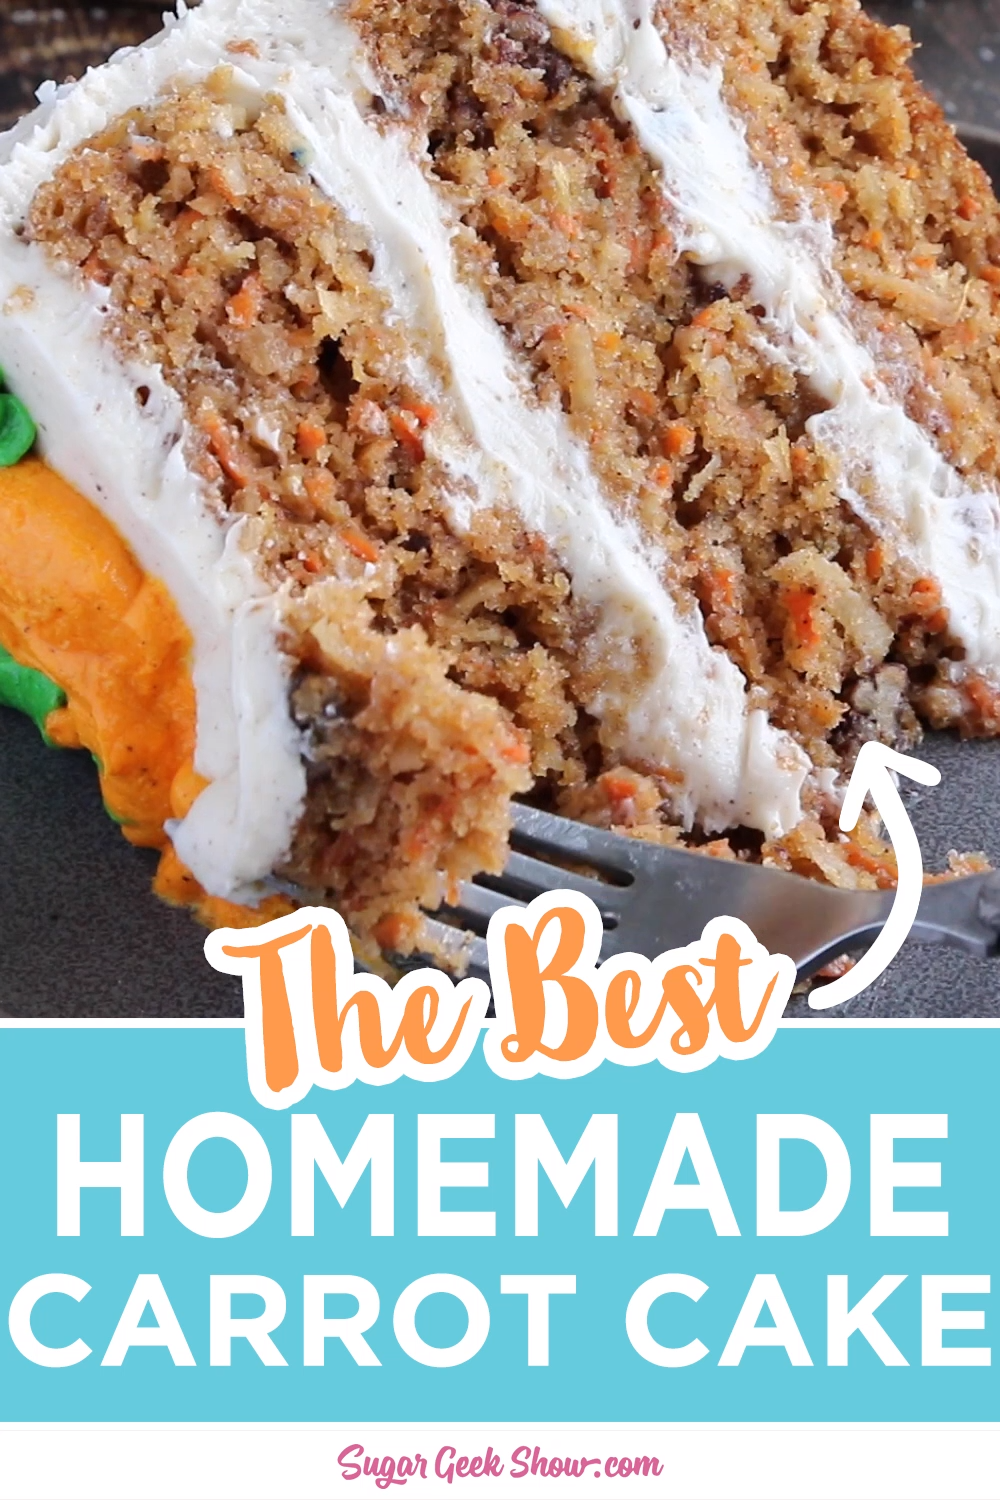 The best carrot cake with pineapple recipe